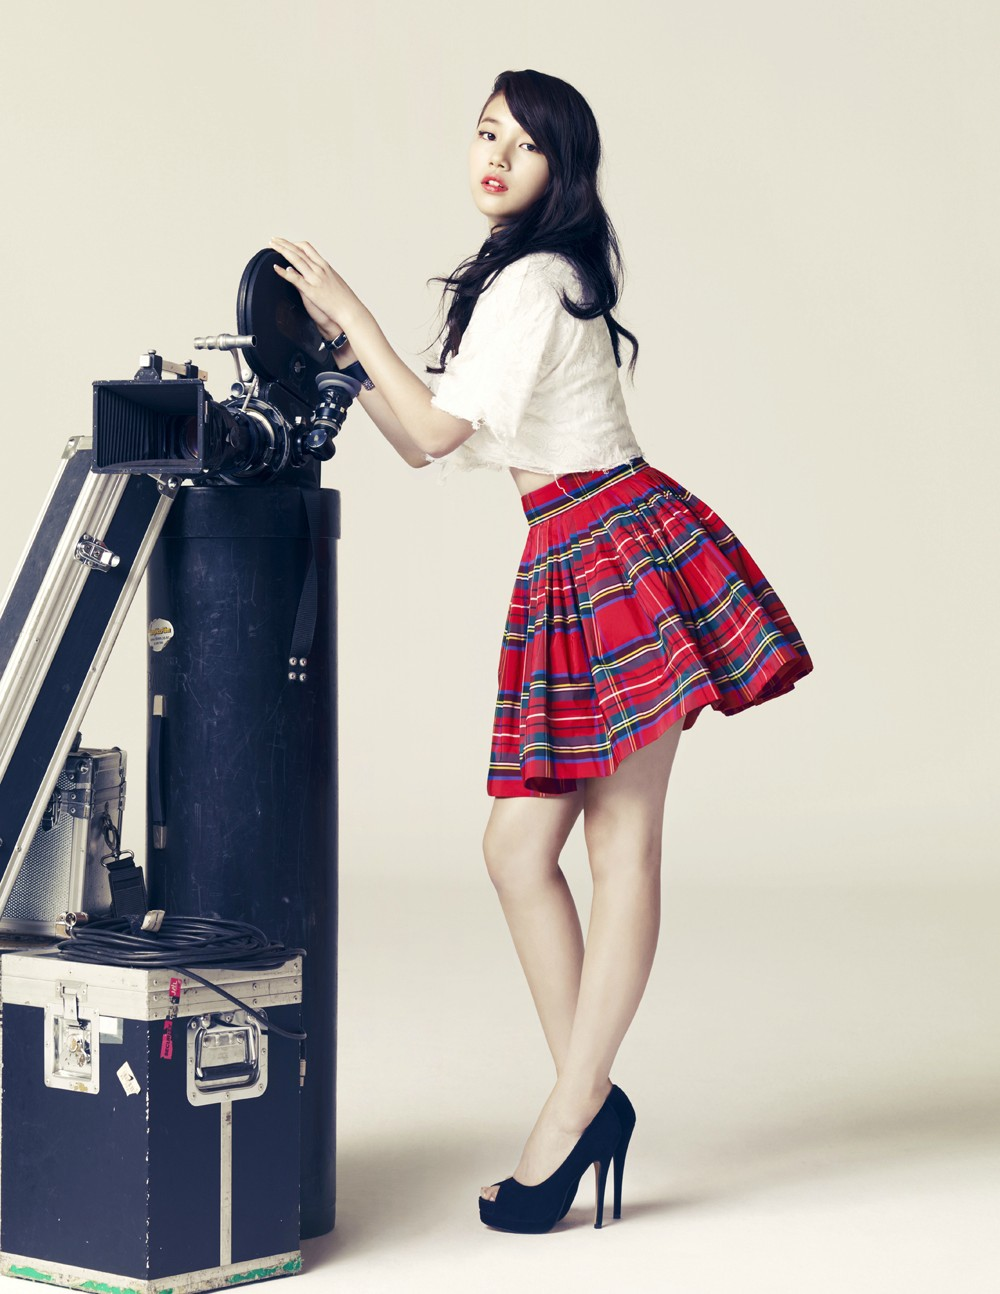 Miss A and Baek Ah Yeon for Céci - POPdramatic